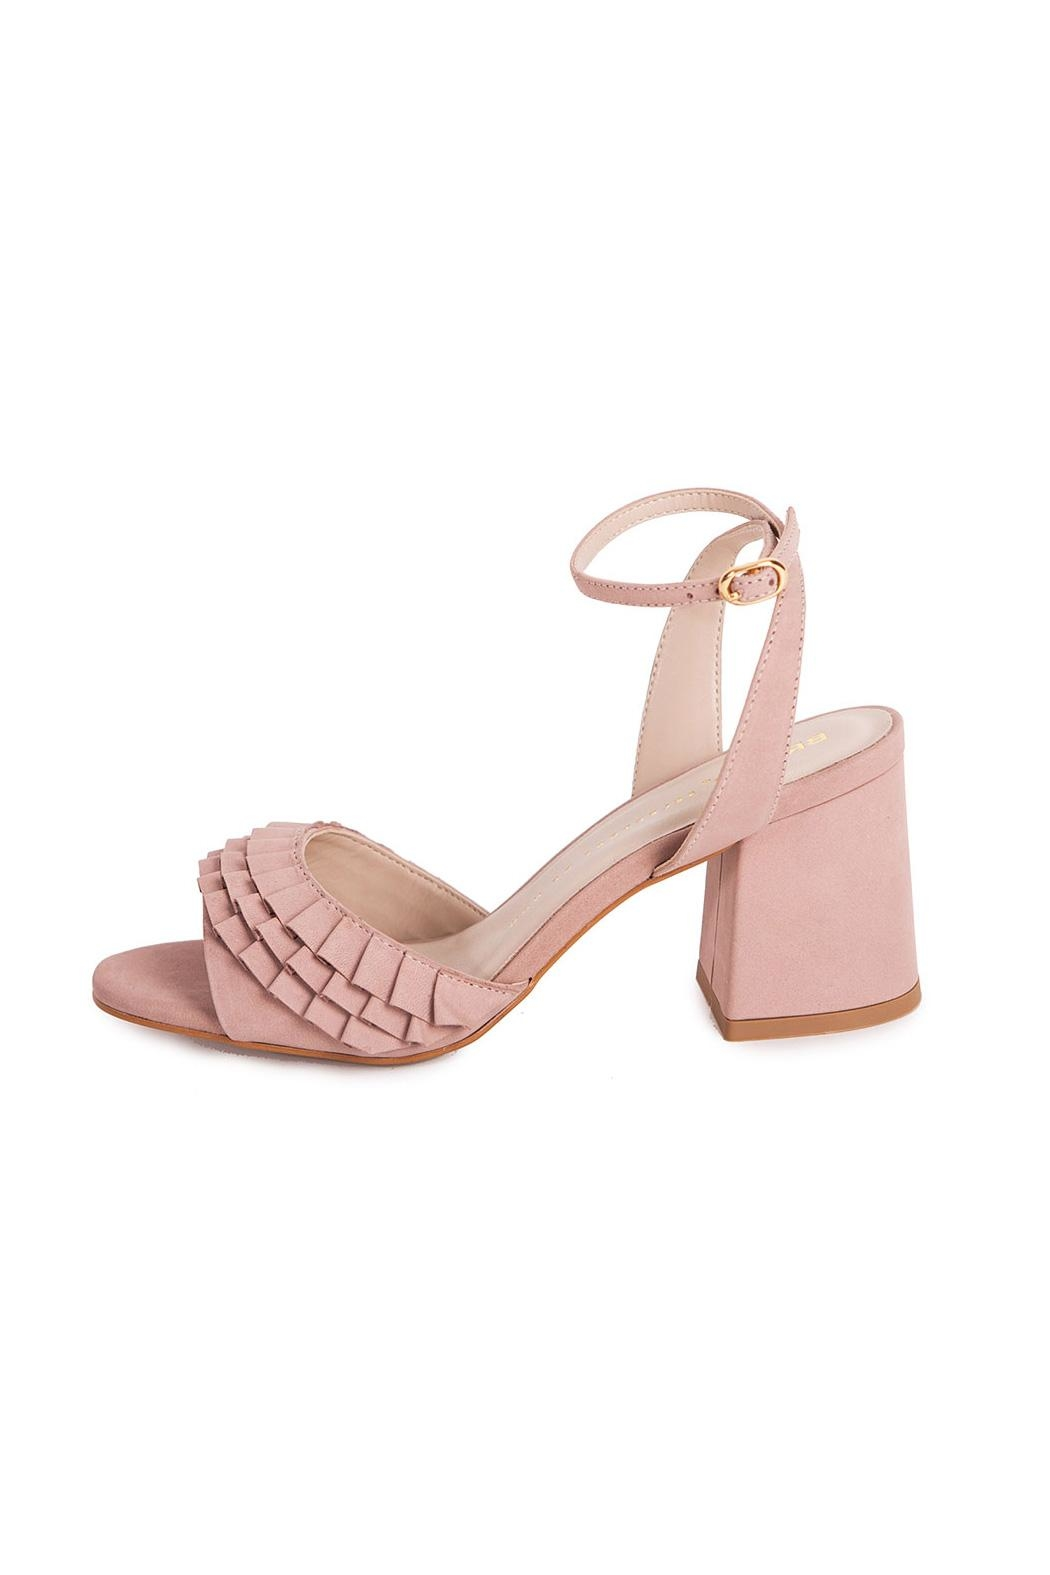 Bronx Pink Suede Heeled Sandals - Front Cropped Image